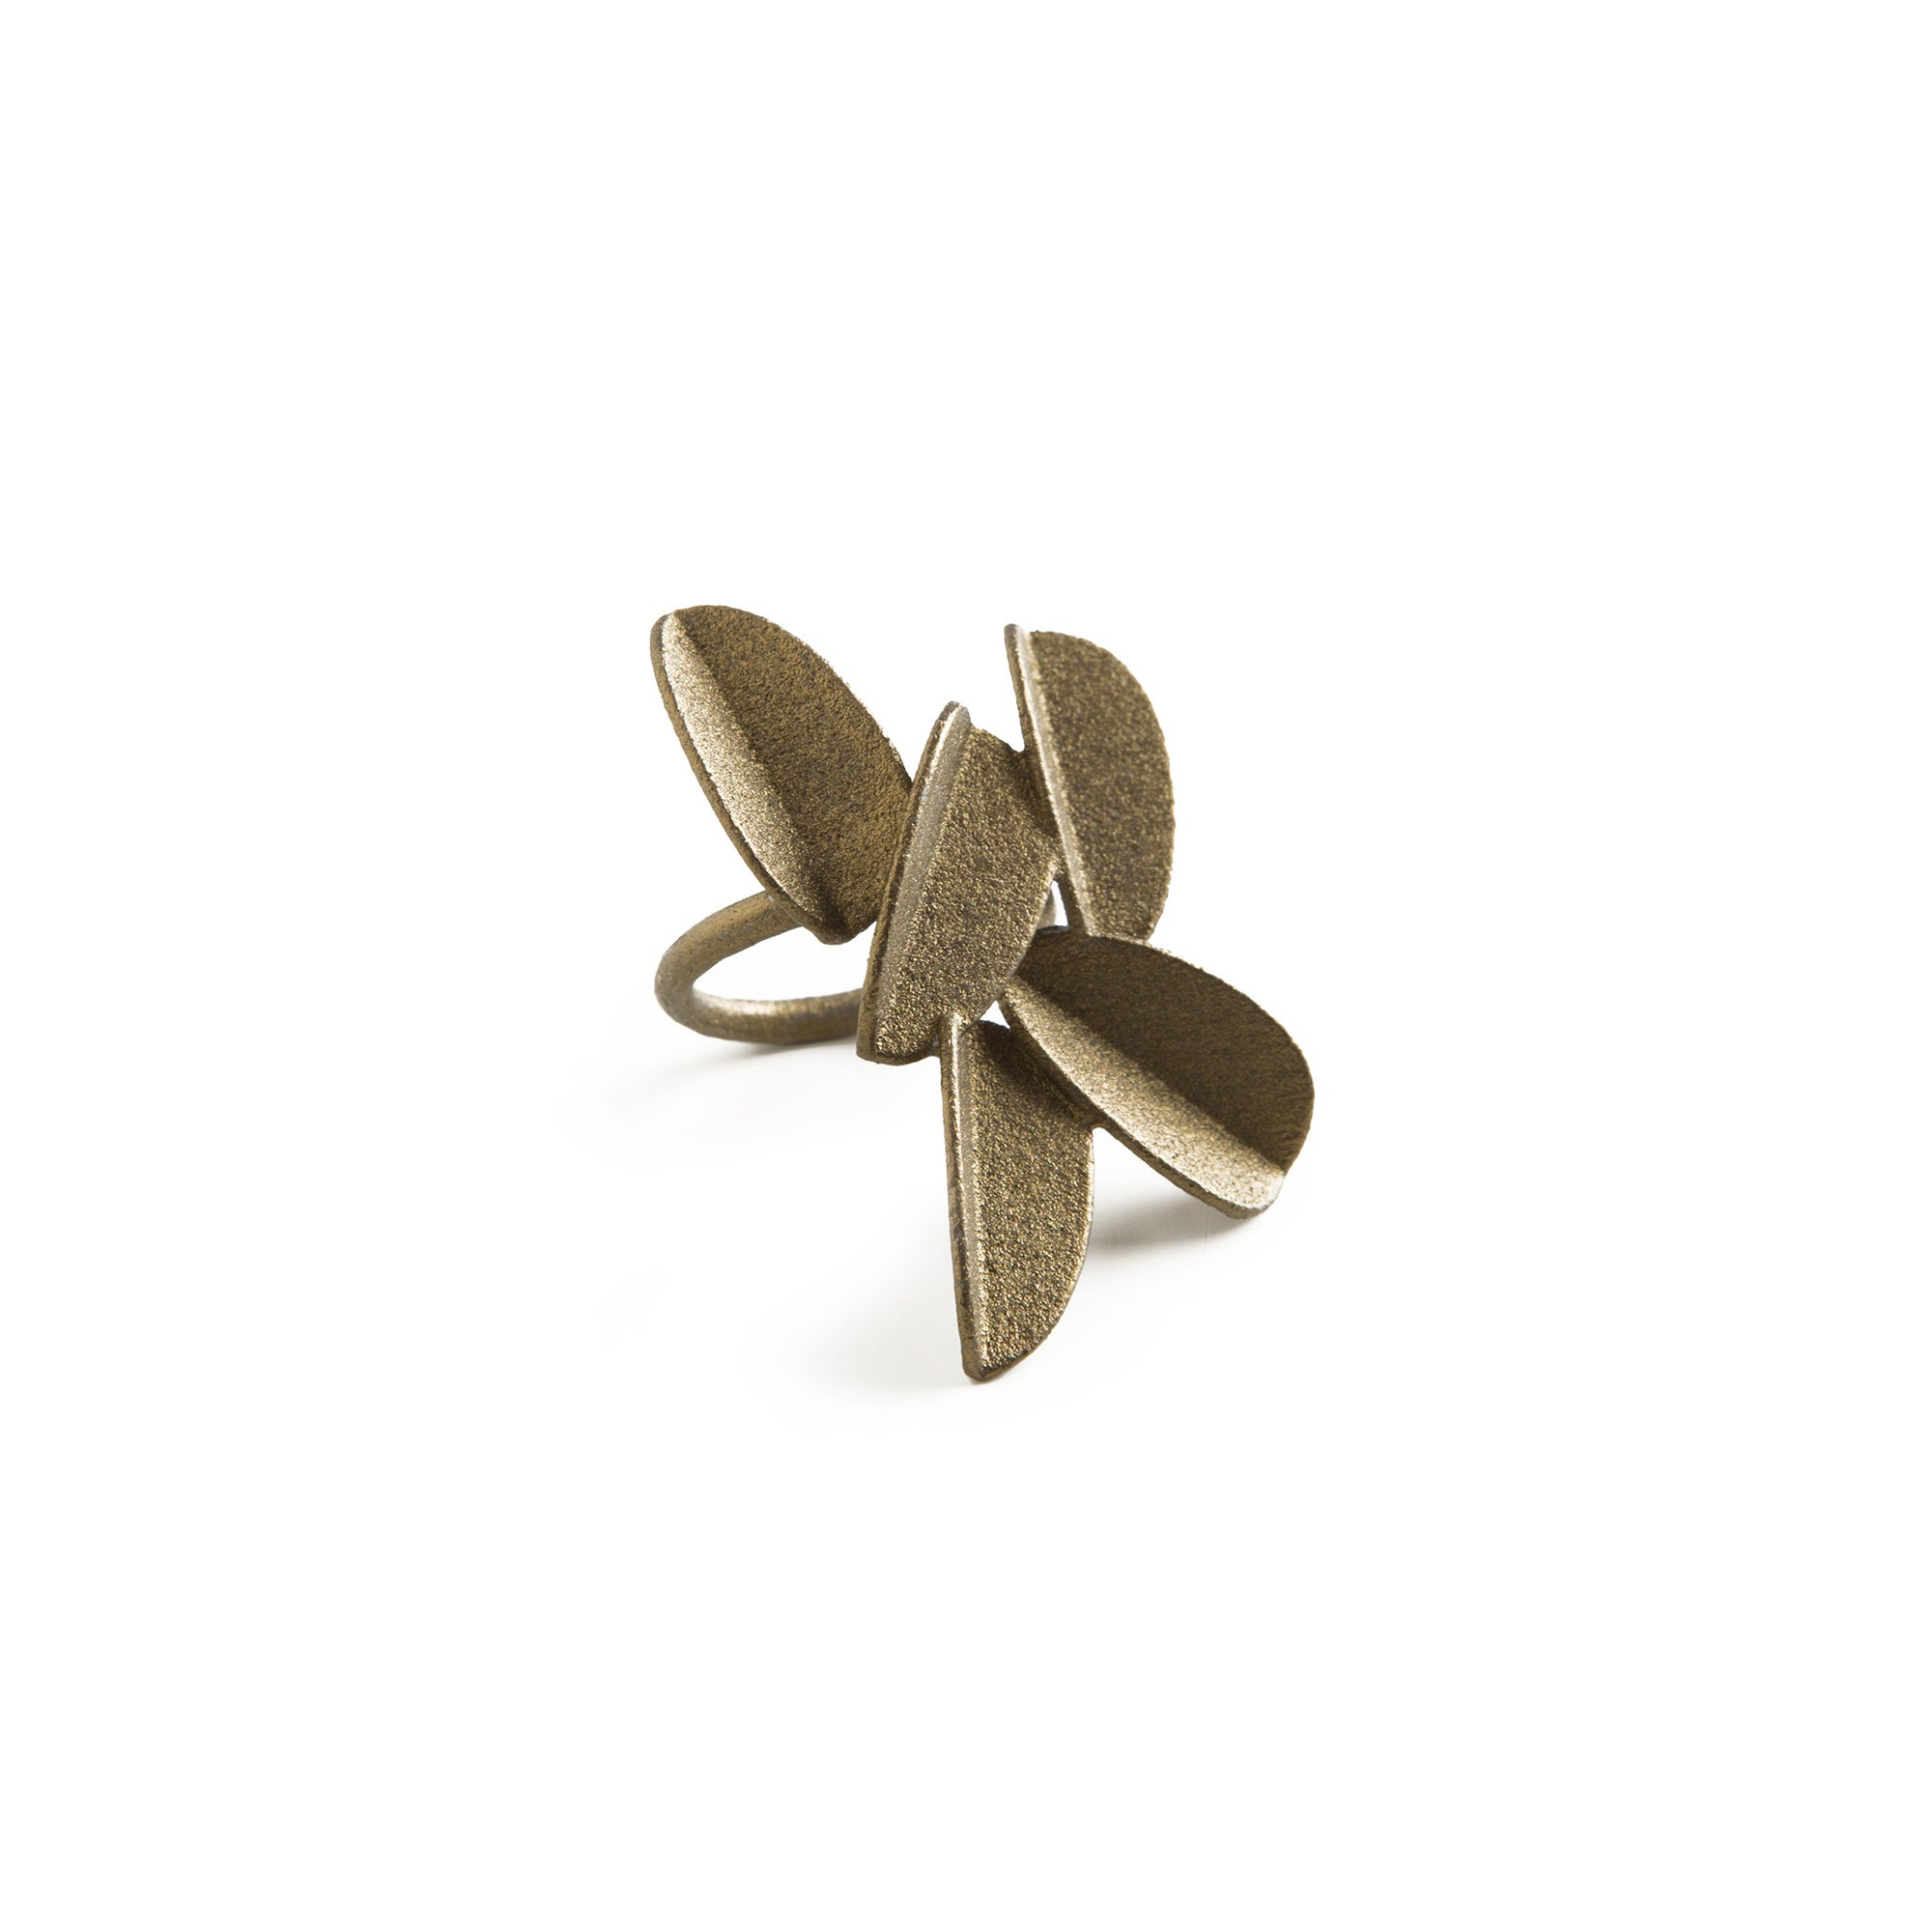 3D Printed Gold Leaves Ring | Getty Store